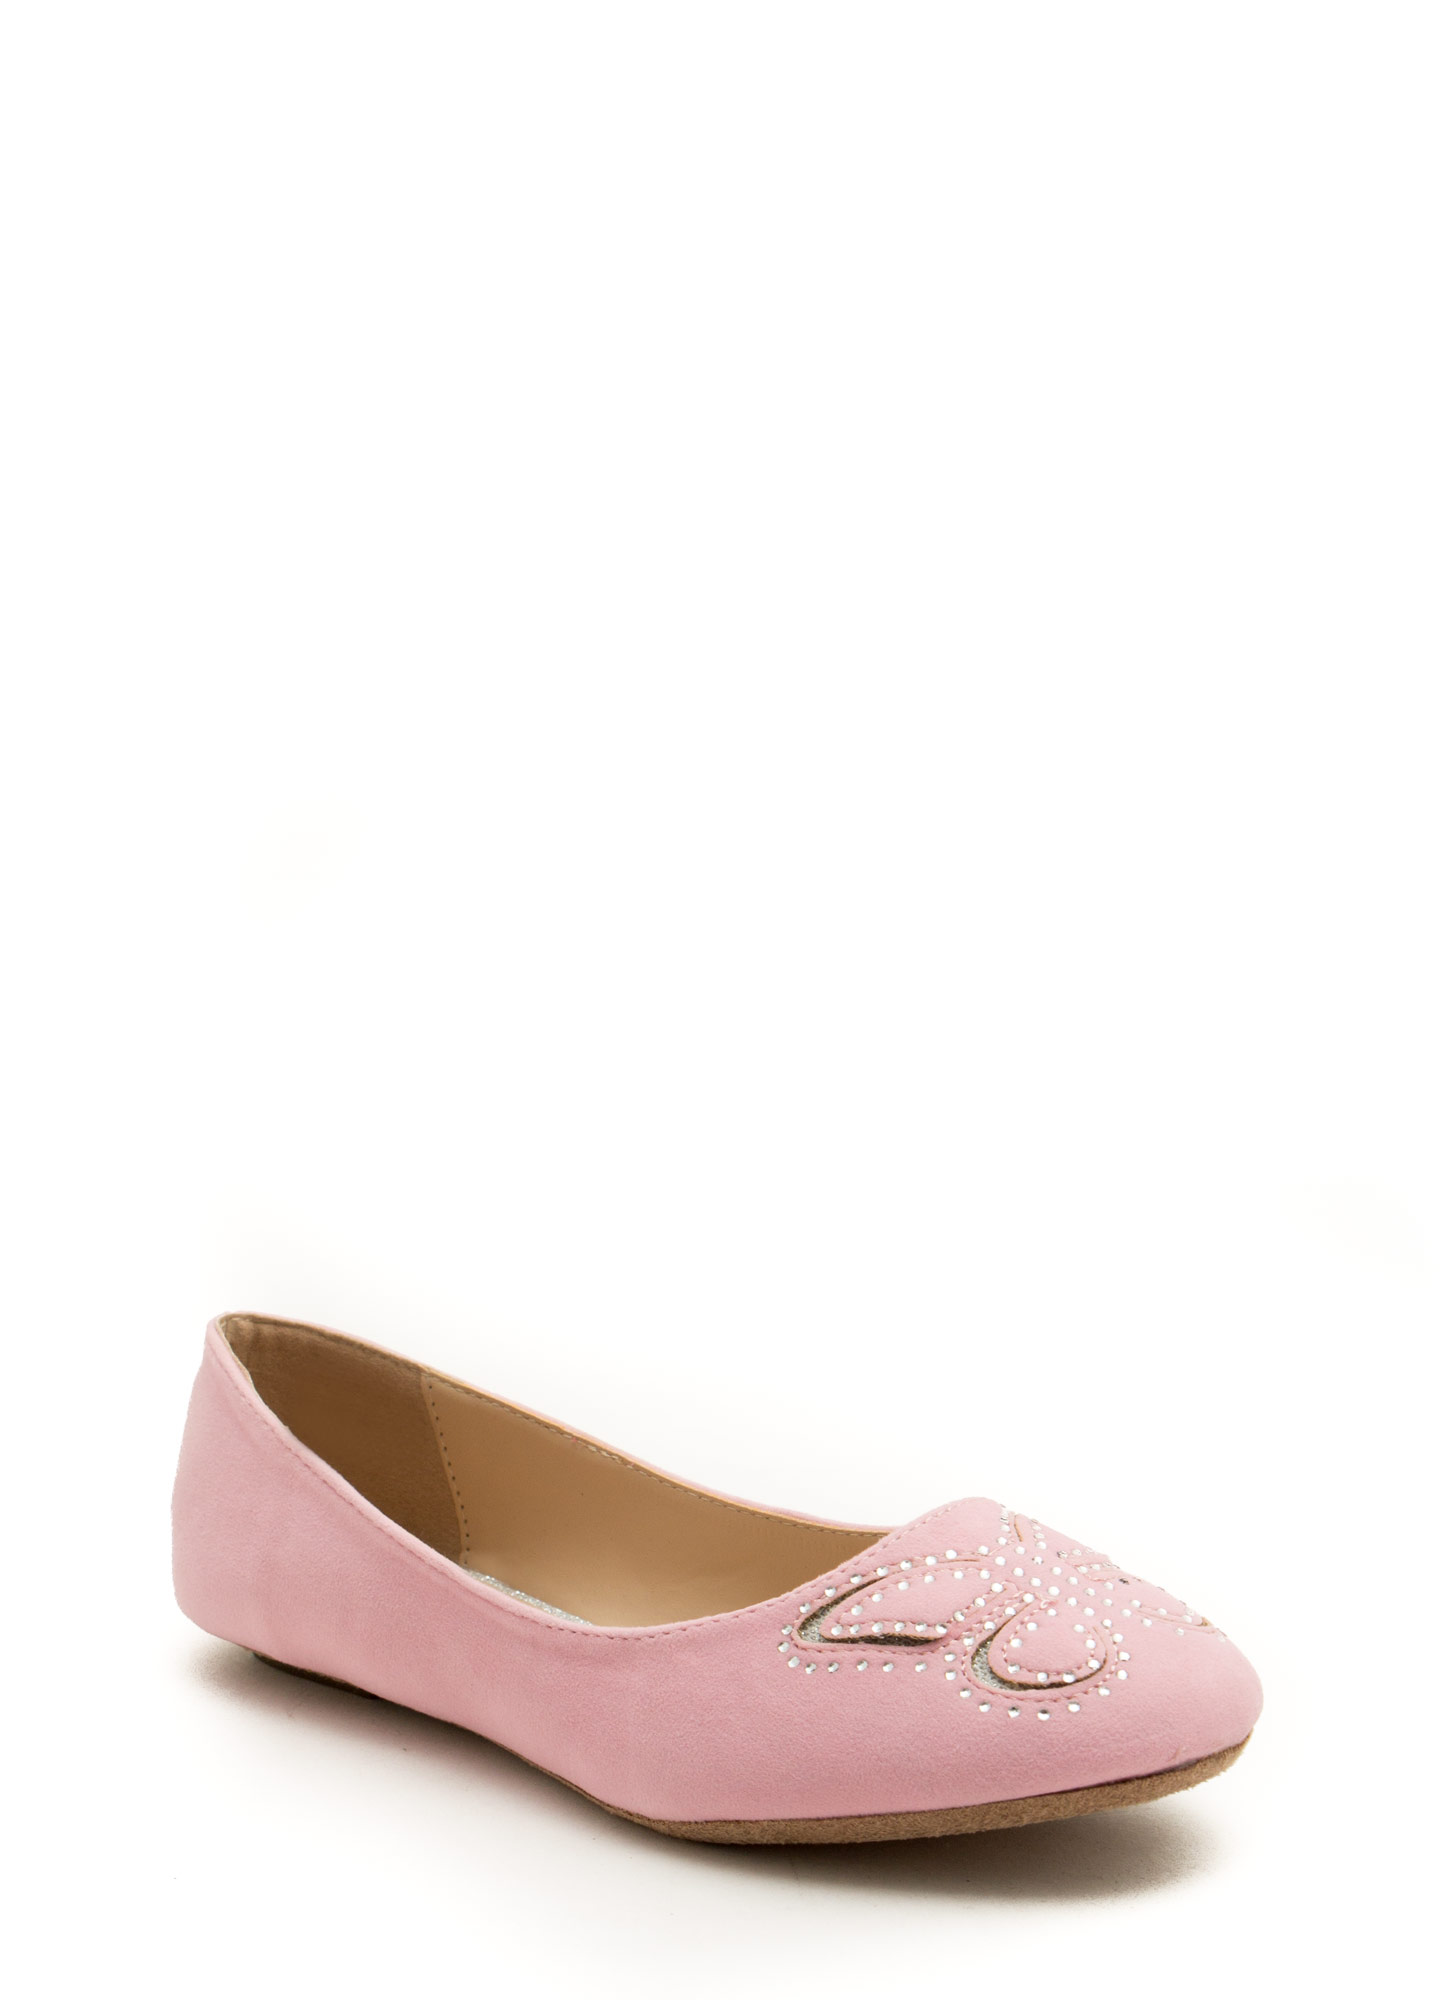 I'm So Butter-fly Flats PINK